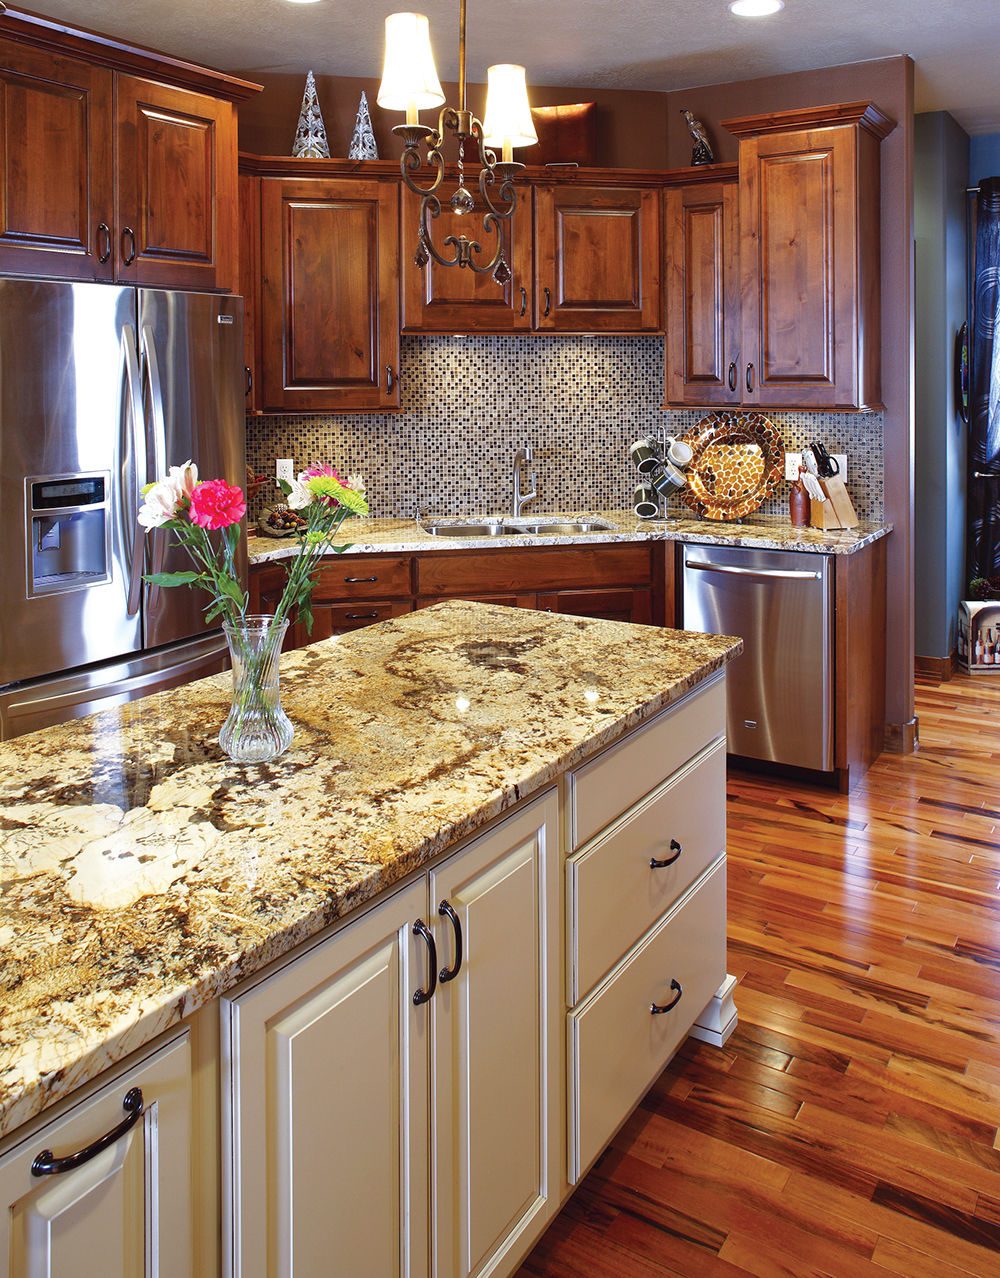 Sandia Sunrooms Now Offering Kitchen Remodeling